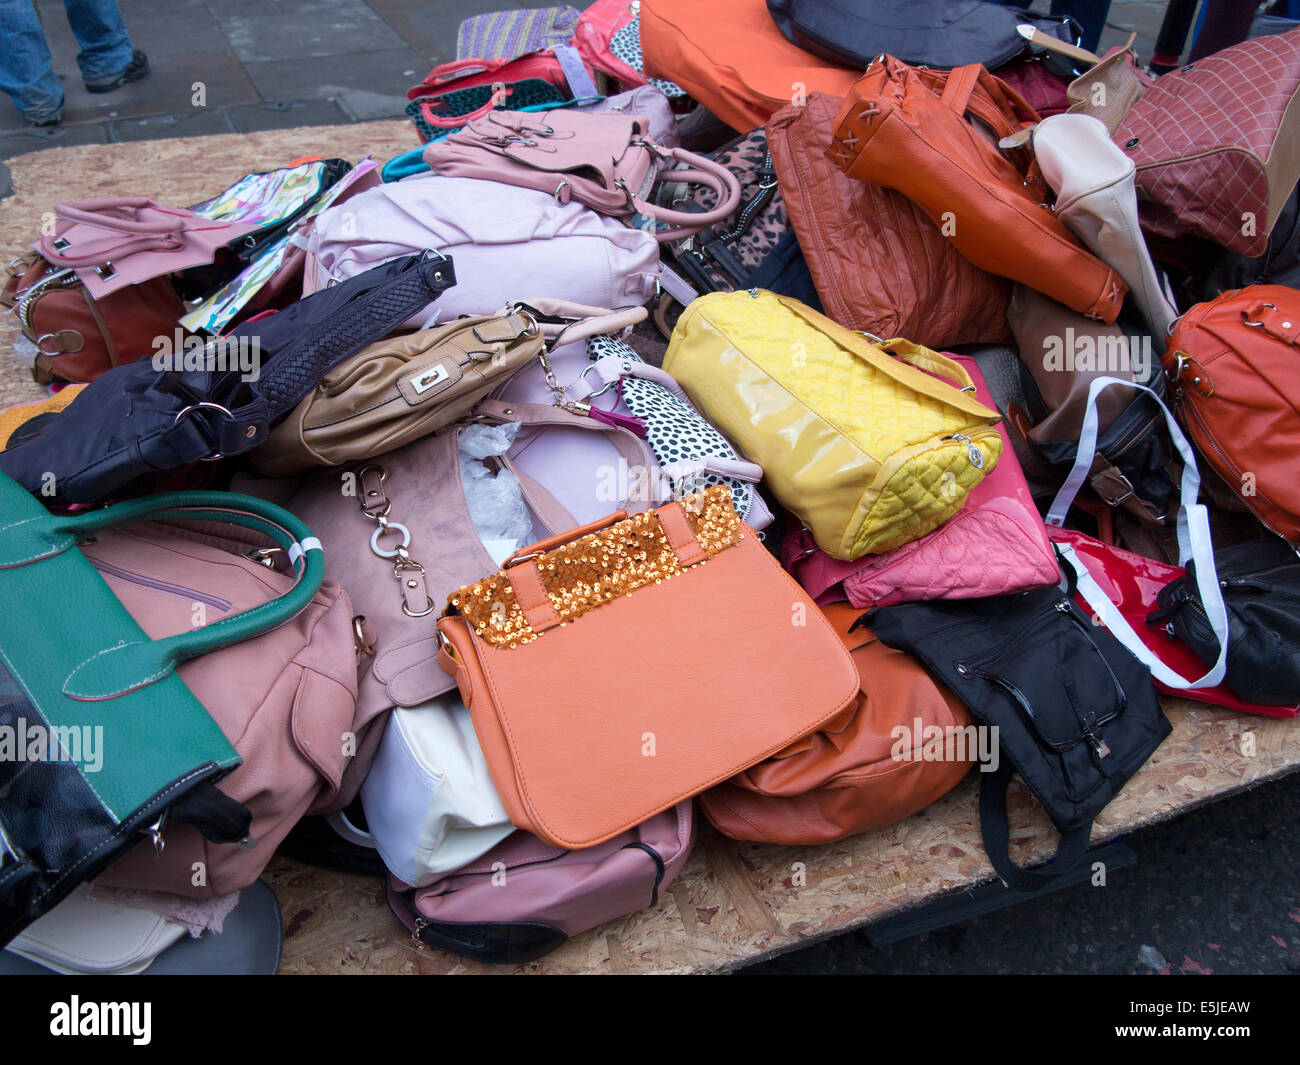 082fad43f89b4 Pile of used worn secondhand bags handbags for sale Stock Photo ...